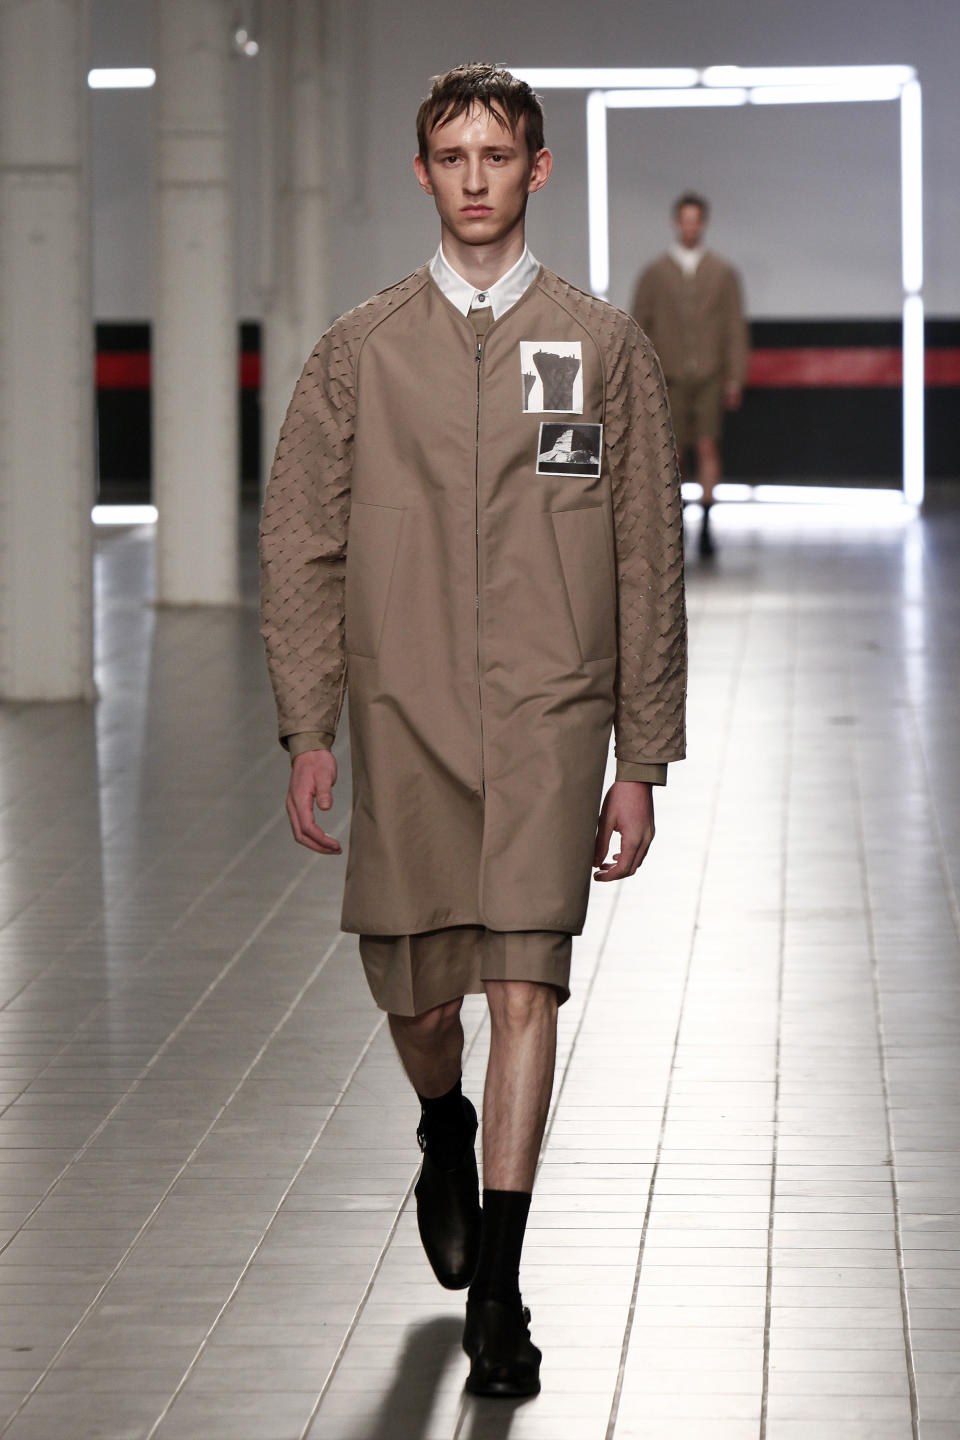 A model presents a creation by German fashion designer Damir Doma as part of his men's fashion Spring-Summer 2014 collection, presented Saturday, June 29, 2013 in Paris. (AP Photo/Thibault Camus)